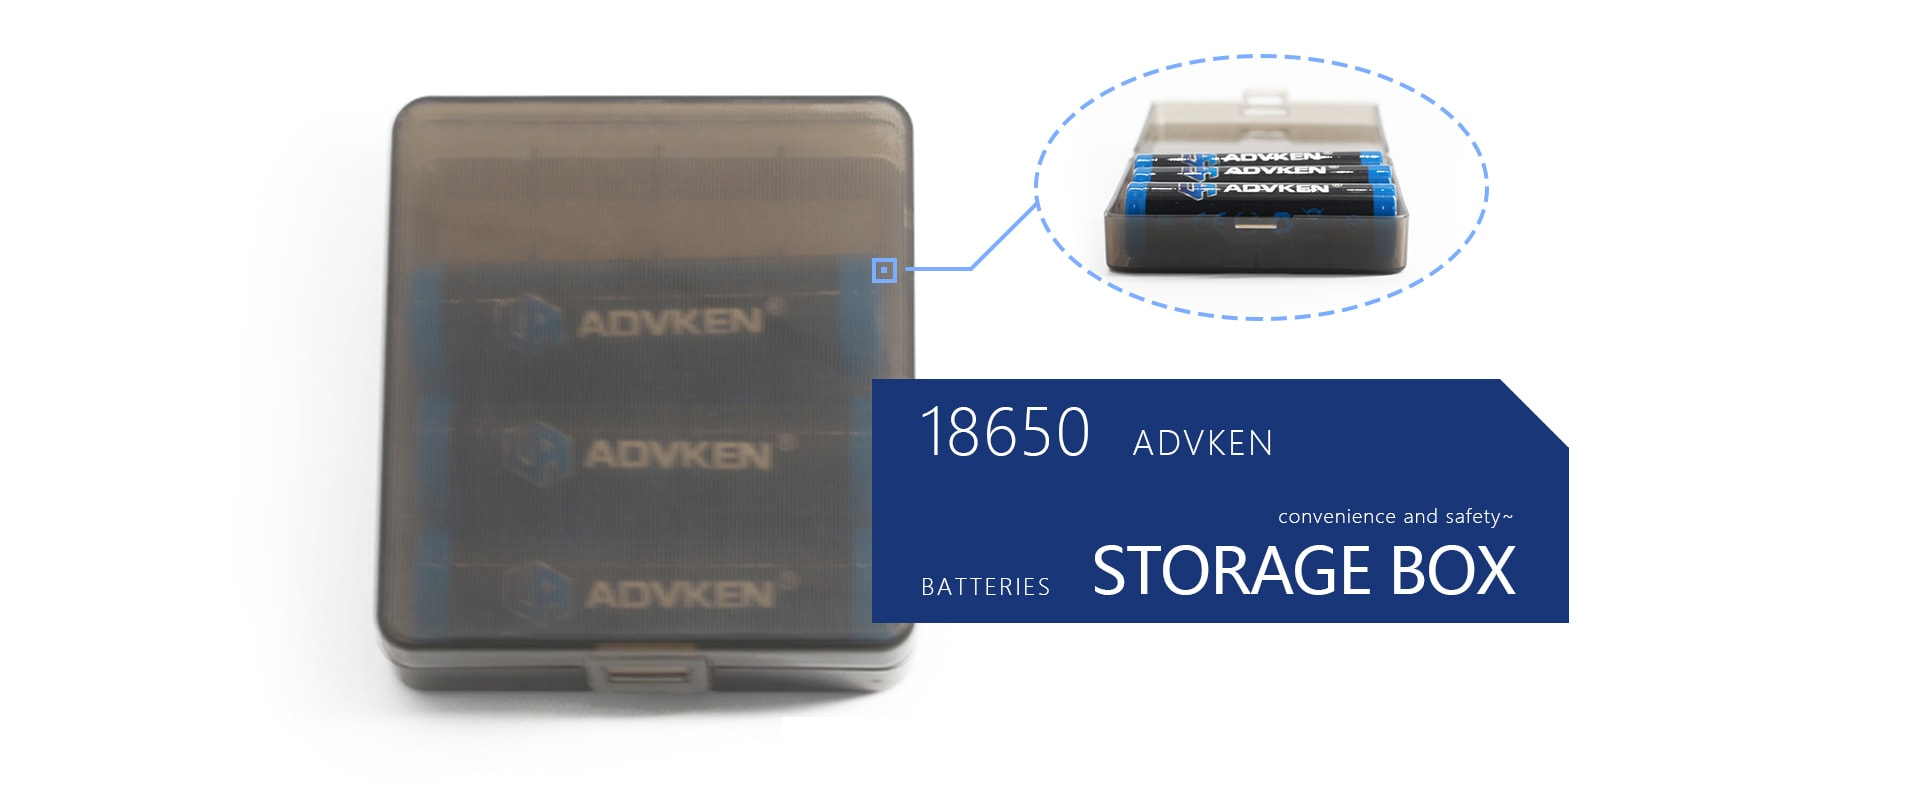 advken 18650 battery box 4 pc